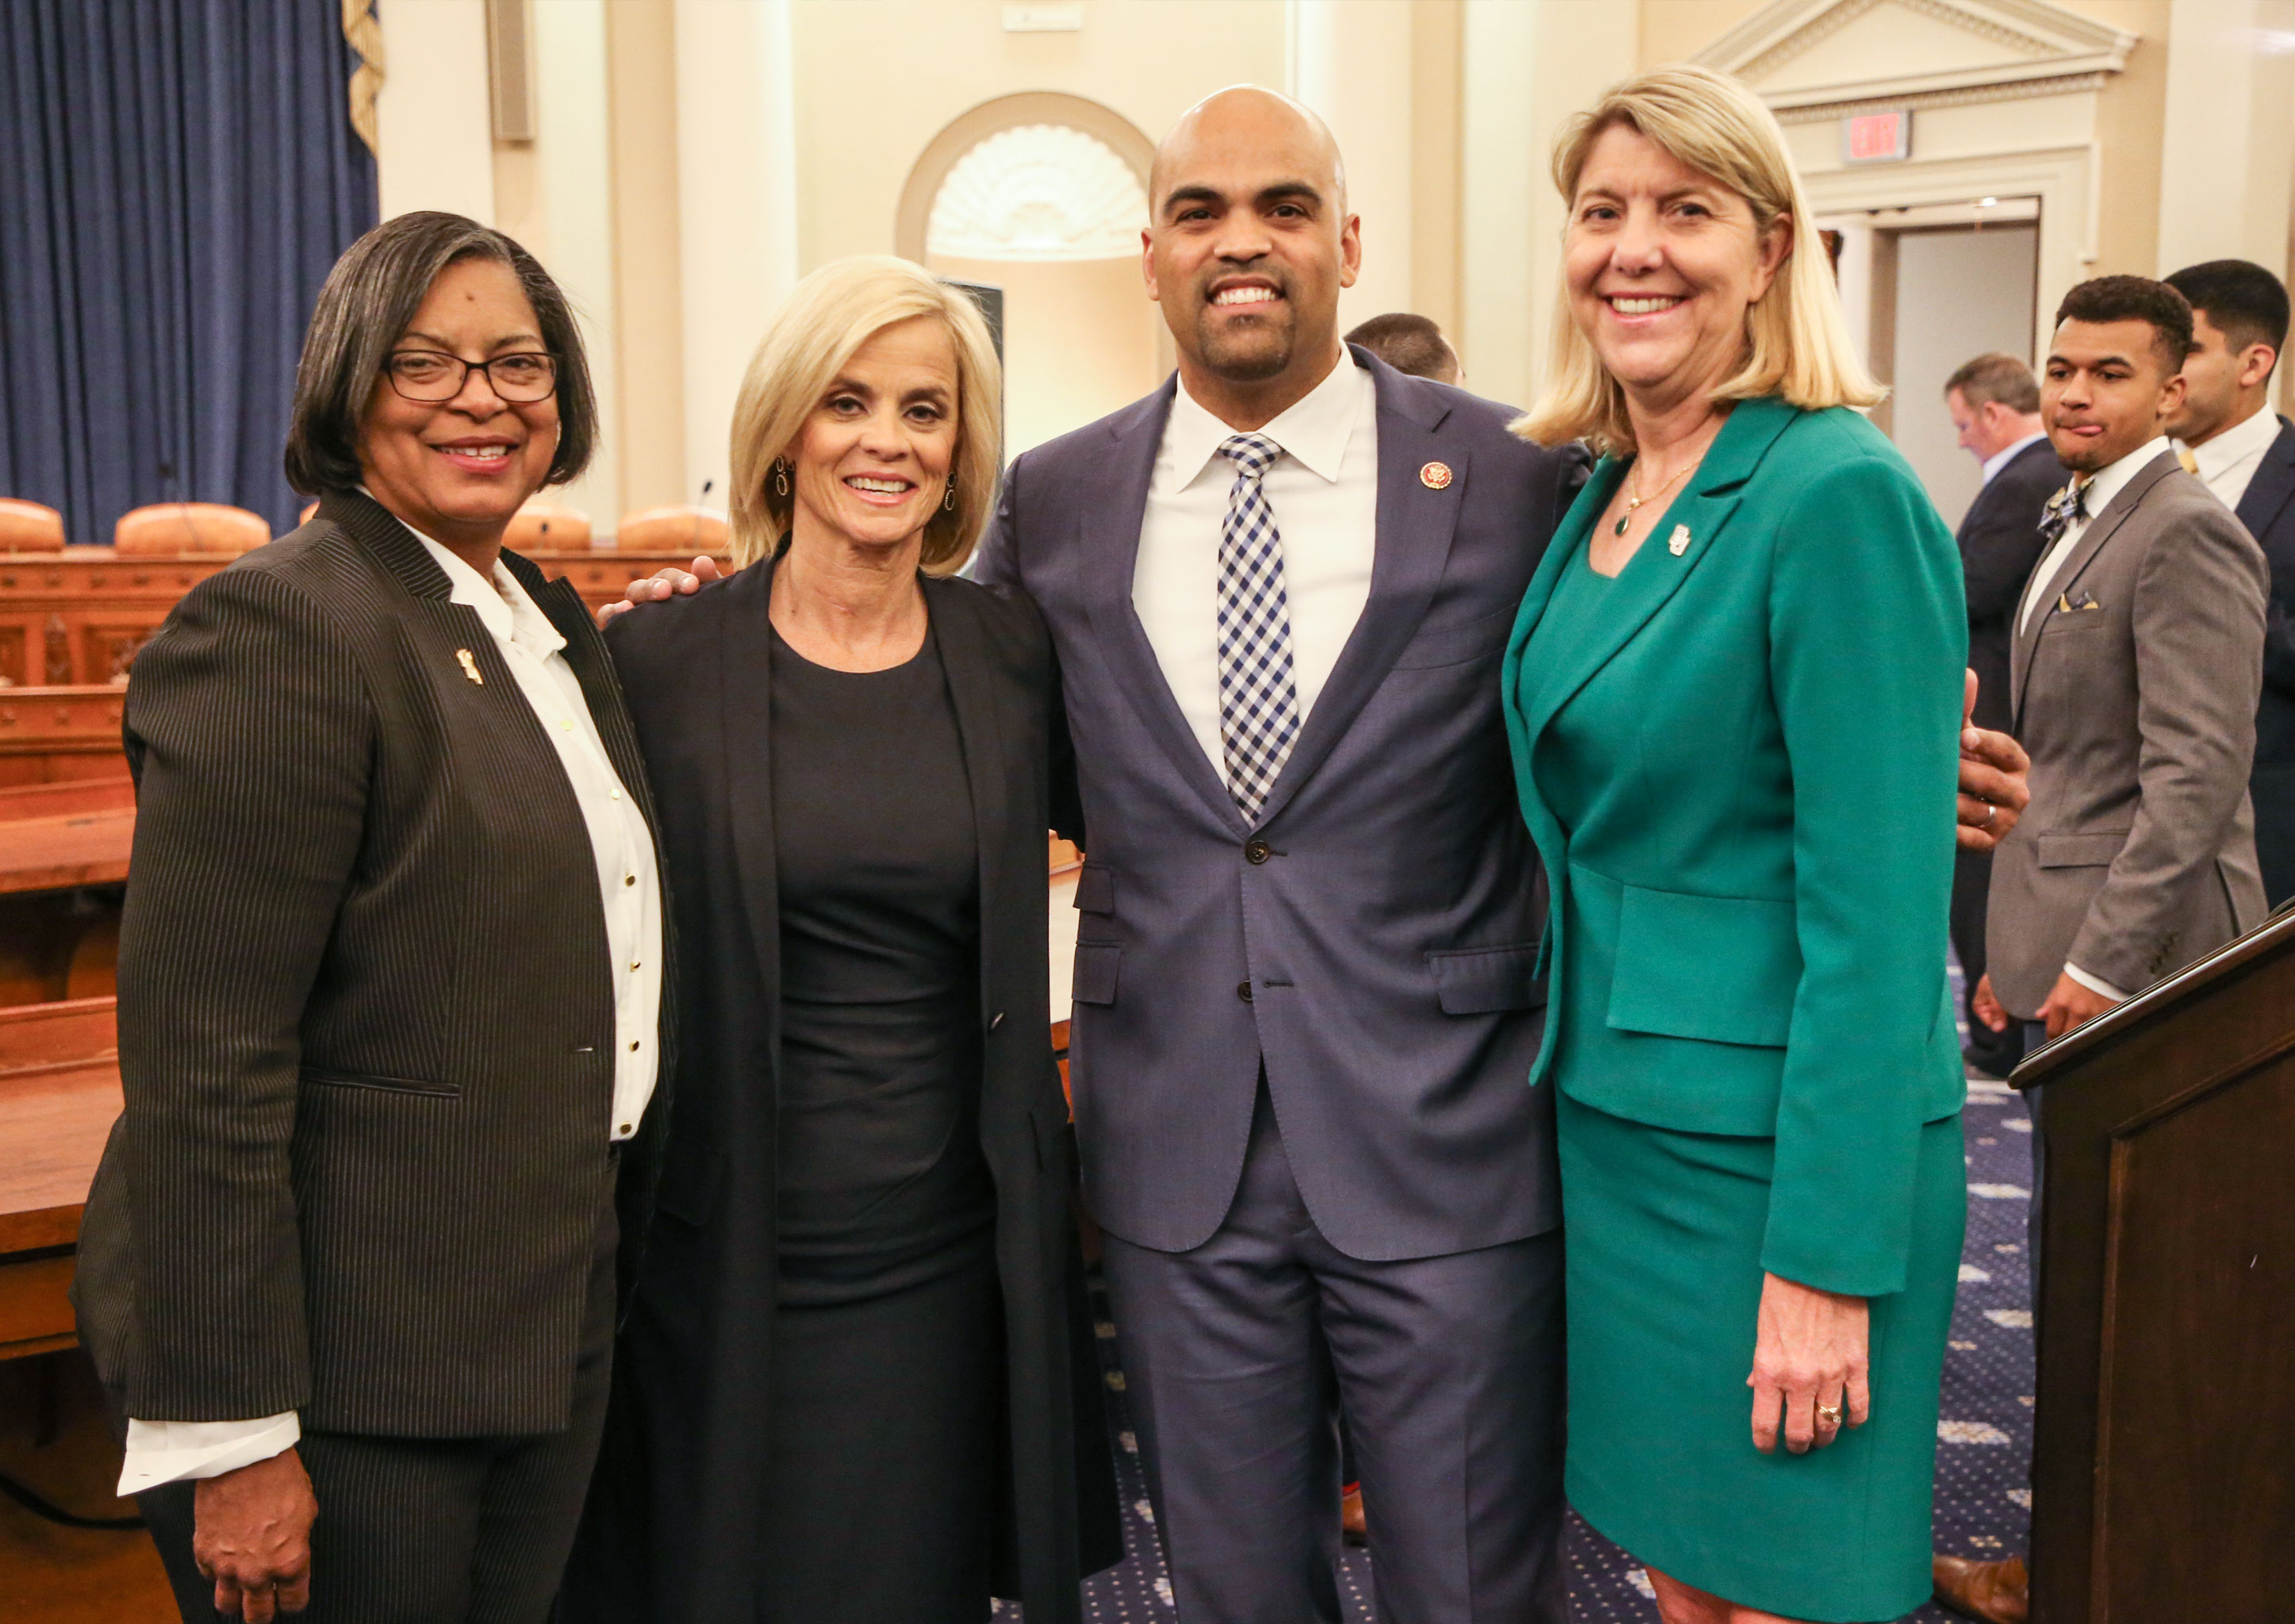 A Baylor contingent met together during the Lady Bears' visit to Washington, D.C., in April. From left: Rochonda Farmer-Neal, MA '93, director of Baylor's Office of Government Relations; Coach Kim Mulkey; U.S. Representative Collin Allred, BA '06; and Baylor President Linda A. Livingstone, Ph.D.